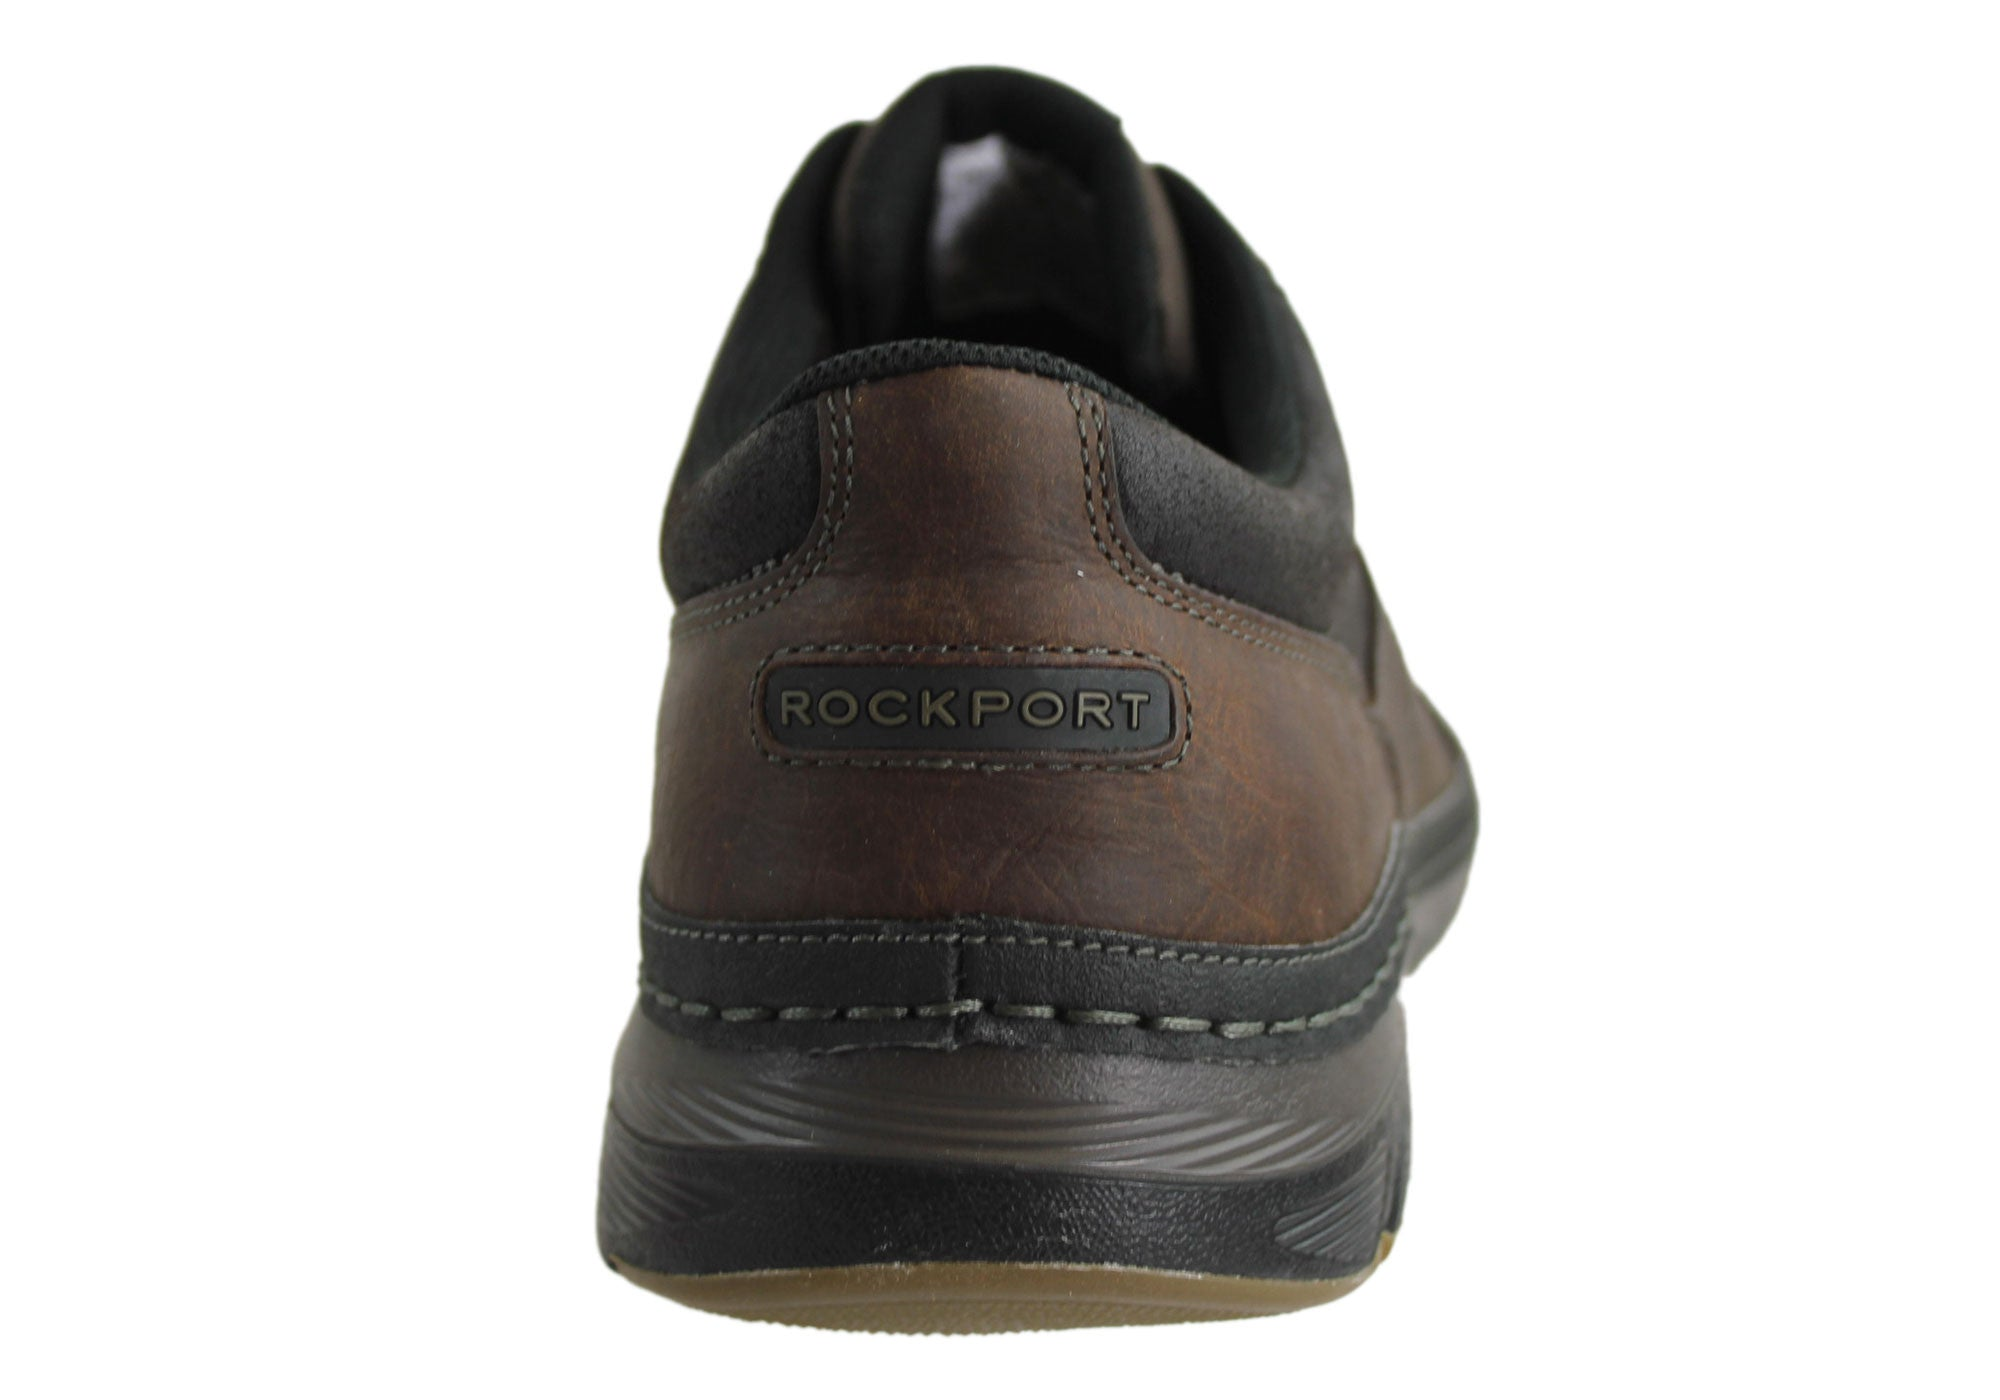 Rockport Activeflex Rocsports Mdgd Mens Wide Fit Shoes